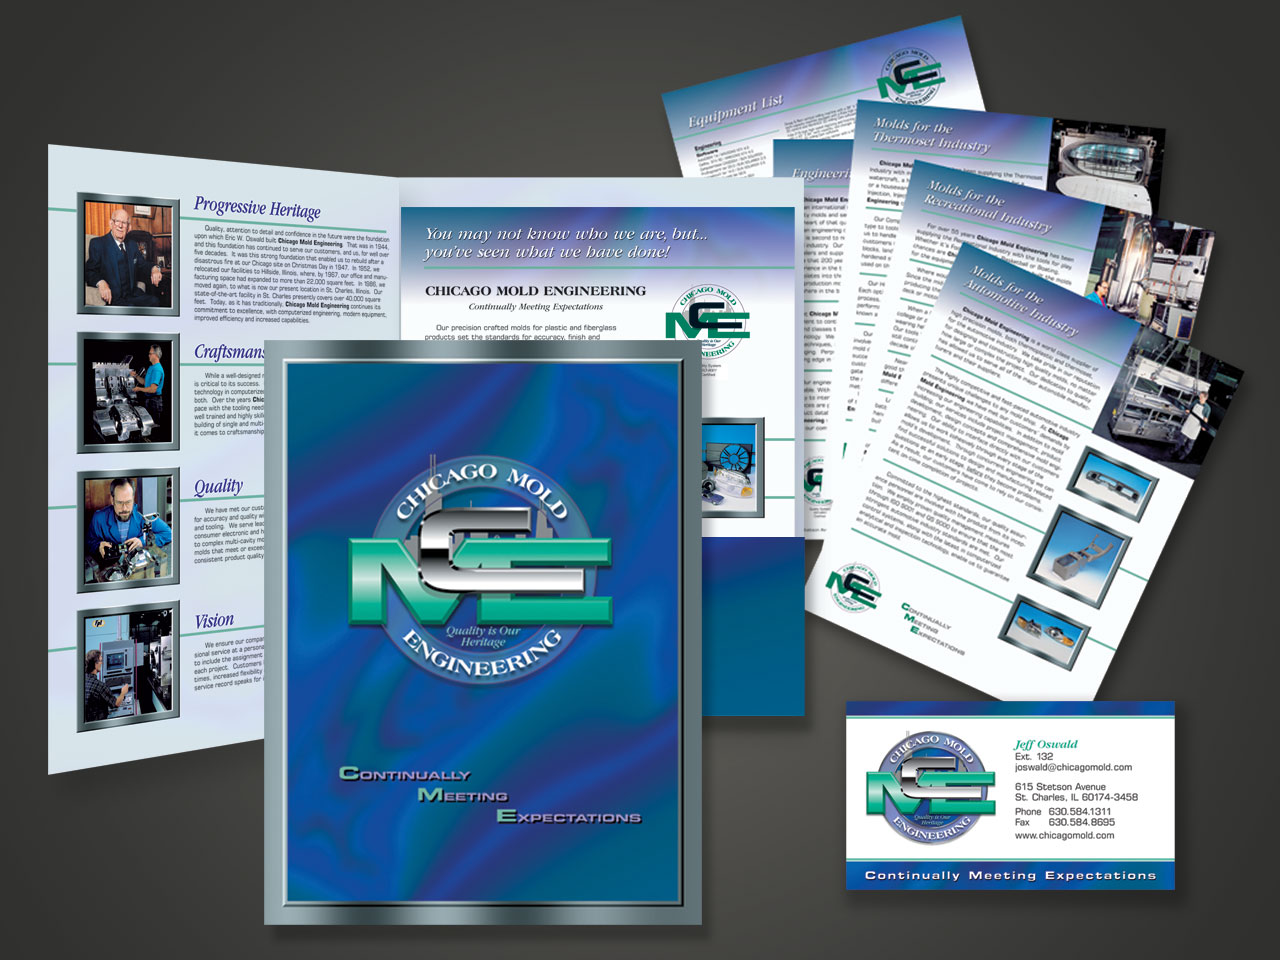 Pirok Design | Printed Marketing Materials